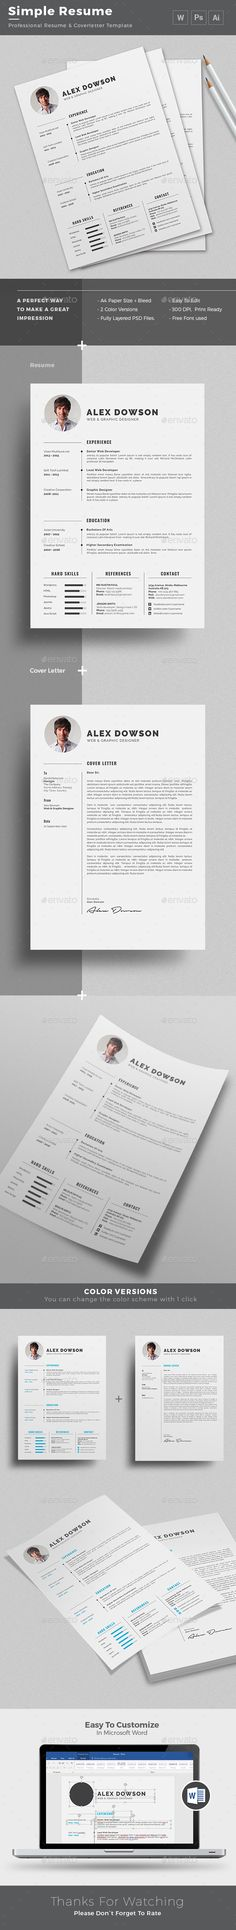 Simple Resume + Free cover letter template | Instant Download http://graphicriver.net/item/resume/16345993?ref=themedevisers